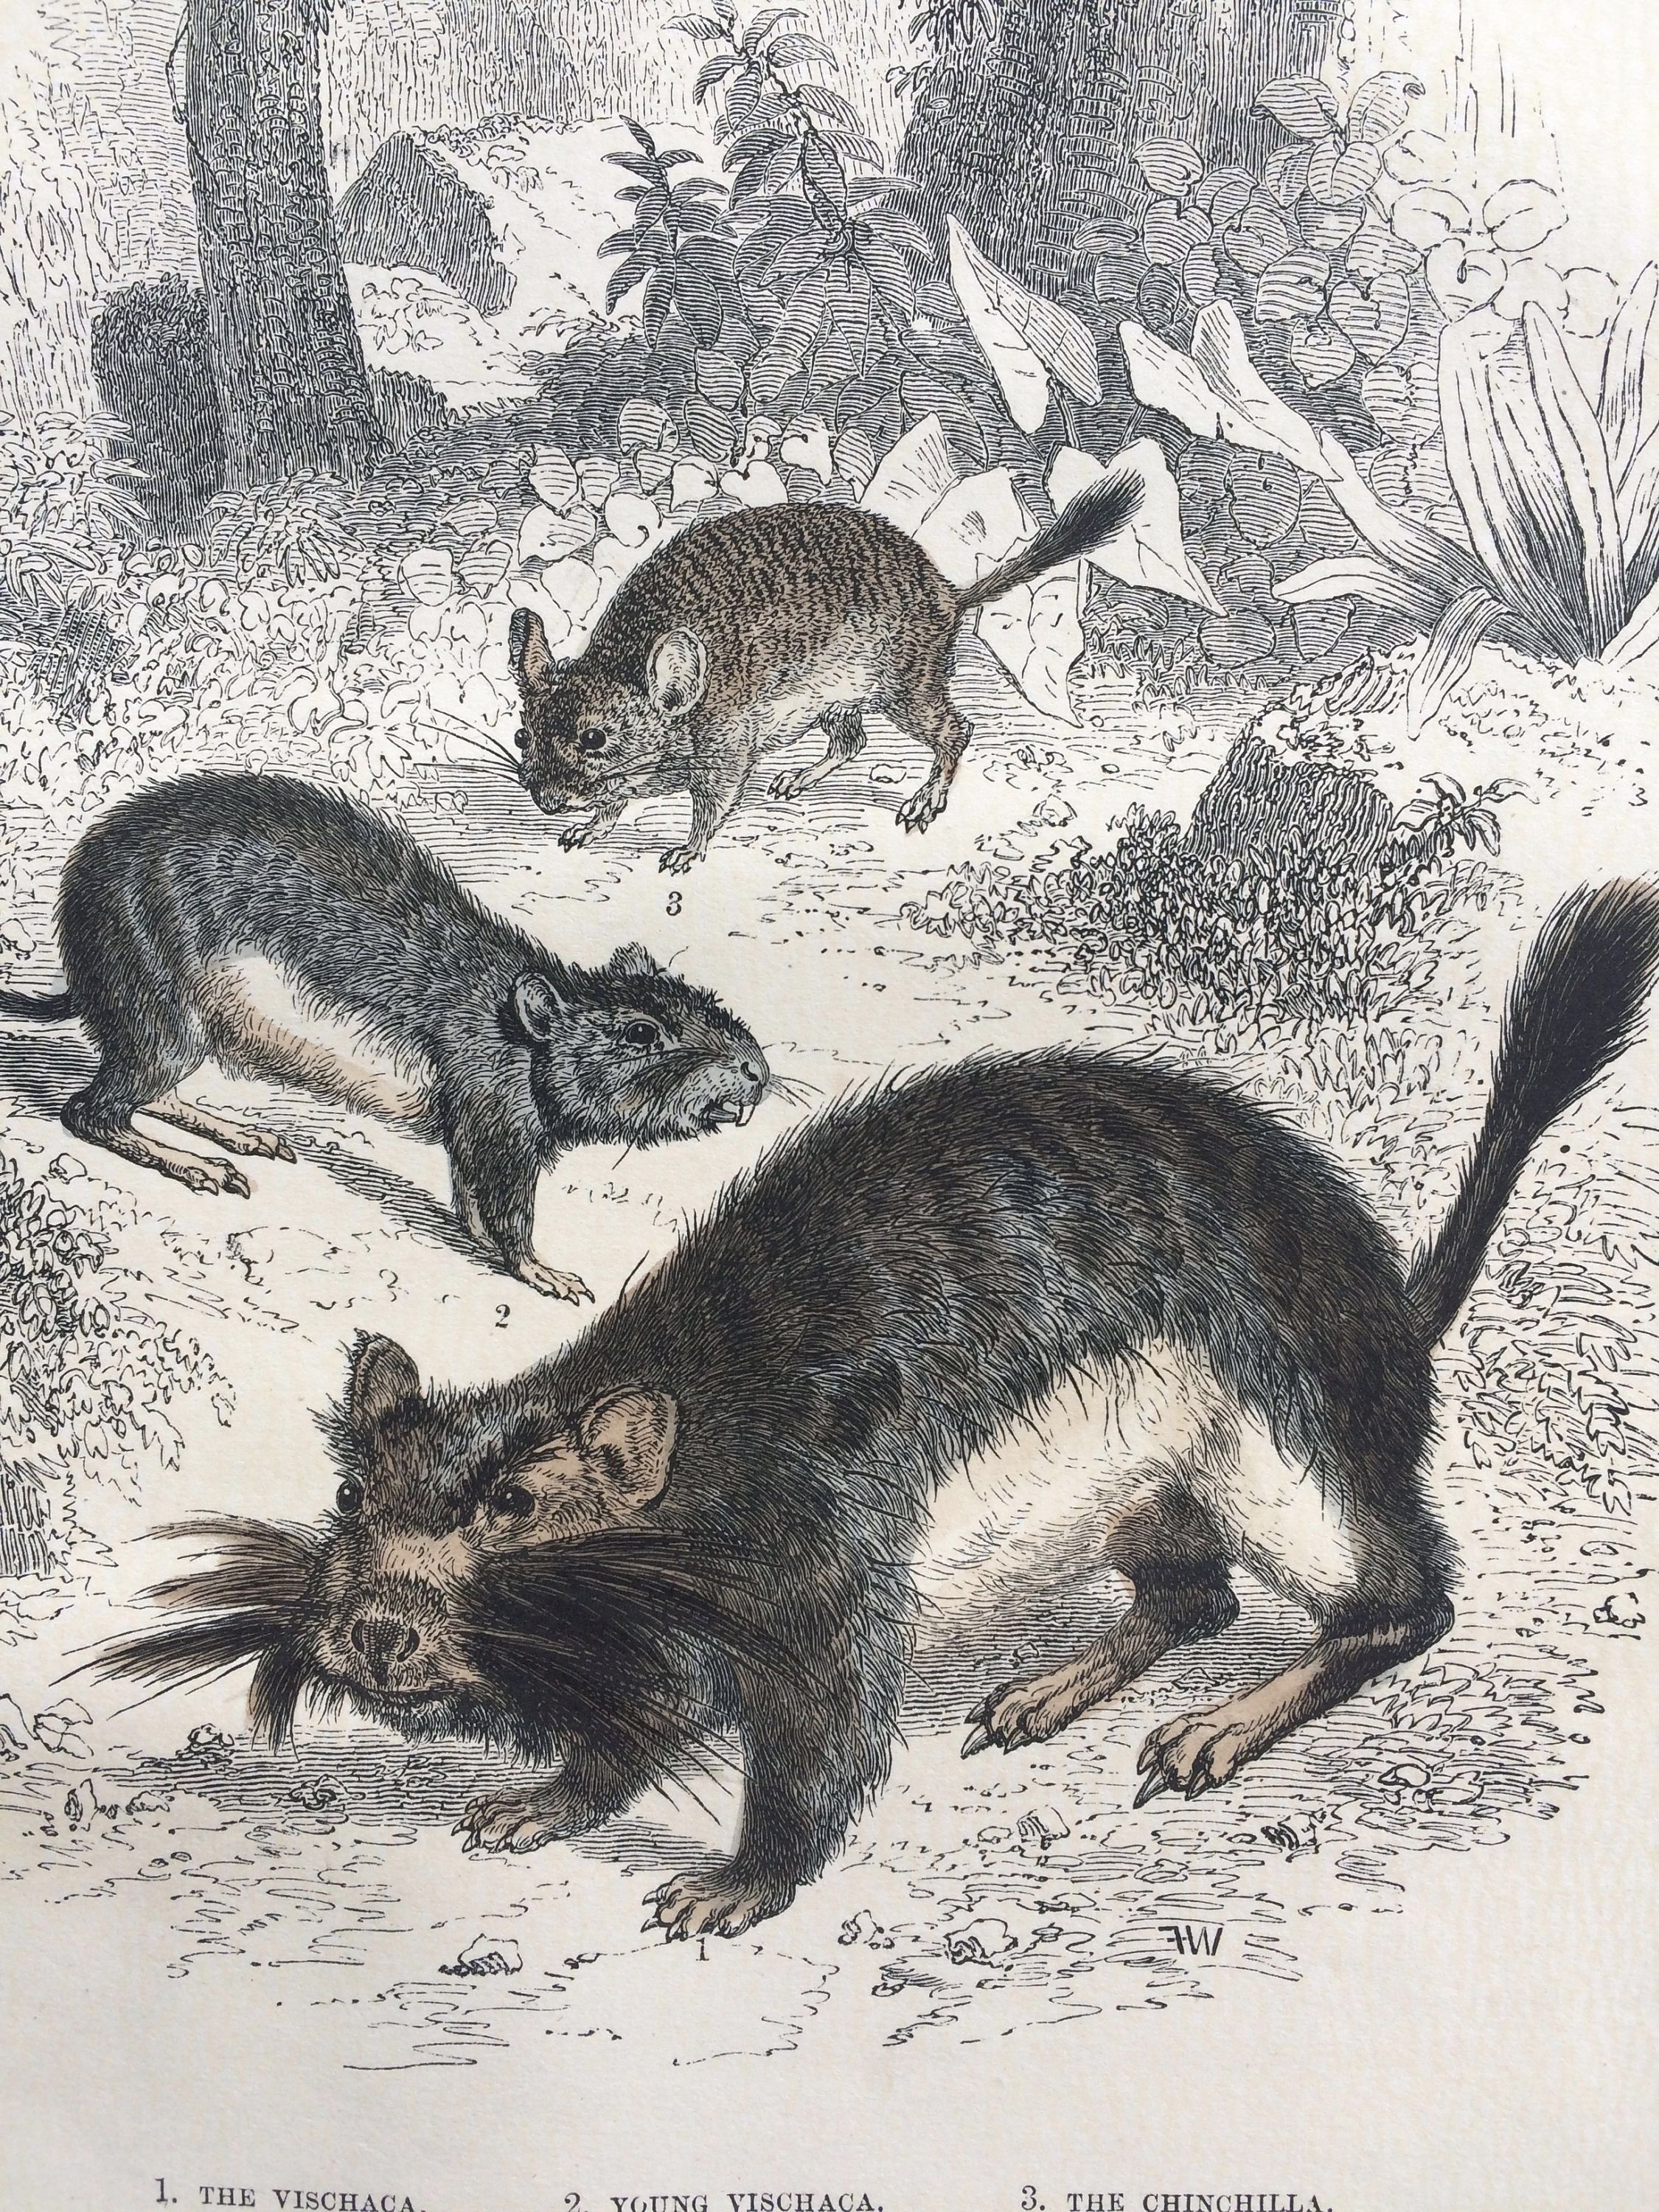 1865 vischaca and chinchilla original antique hand coloured 1865 vischaca and chinchilla original antique hand coloured engraving wildlife wall decor amipublicfo Image collections